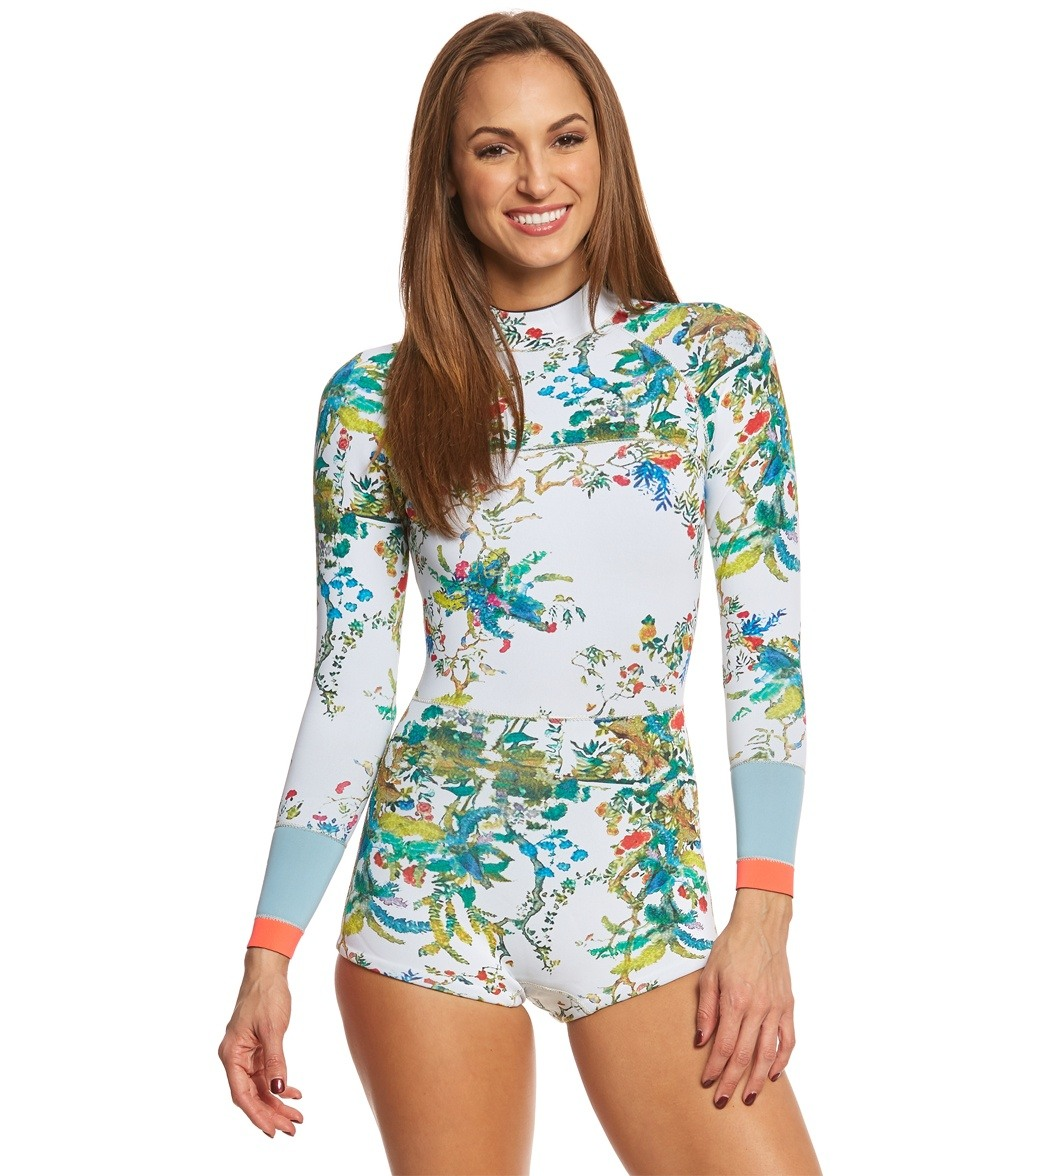 00647d3643 Cynthia Rowley Rainbow Vines Printed Wetsuit at SwimOutlet.com ...